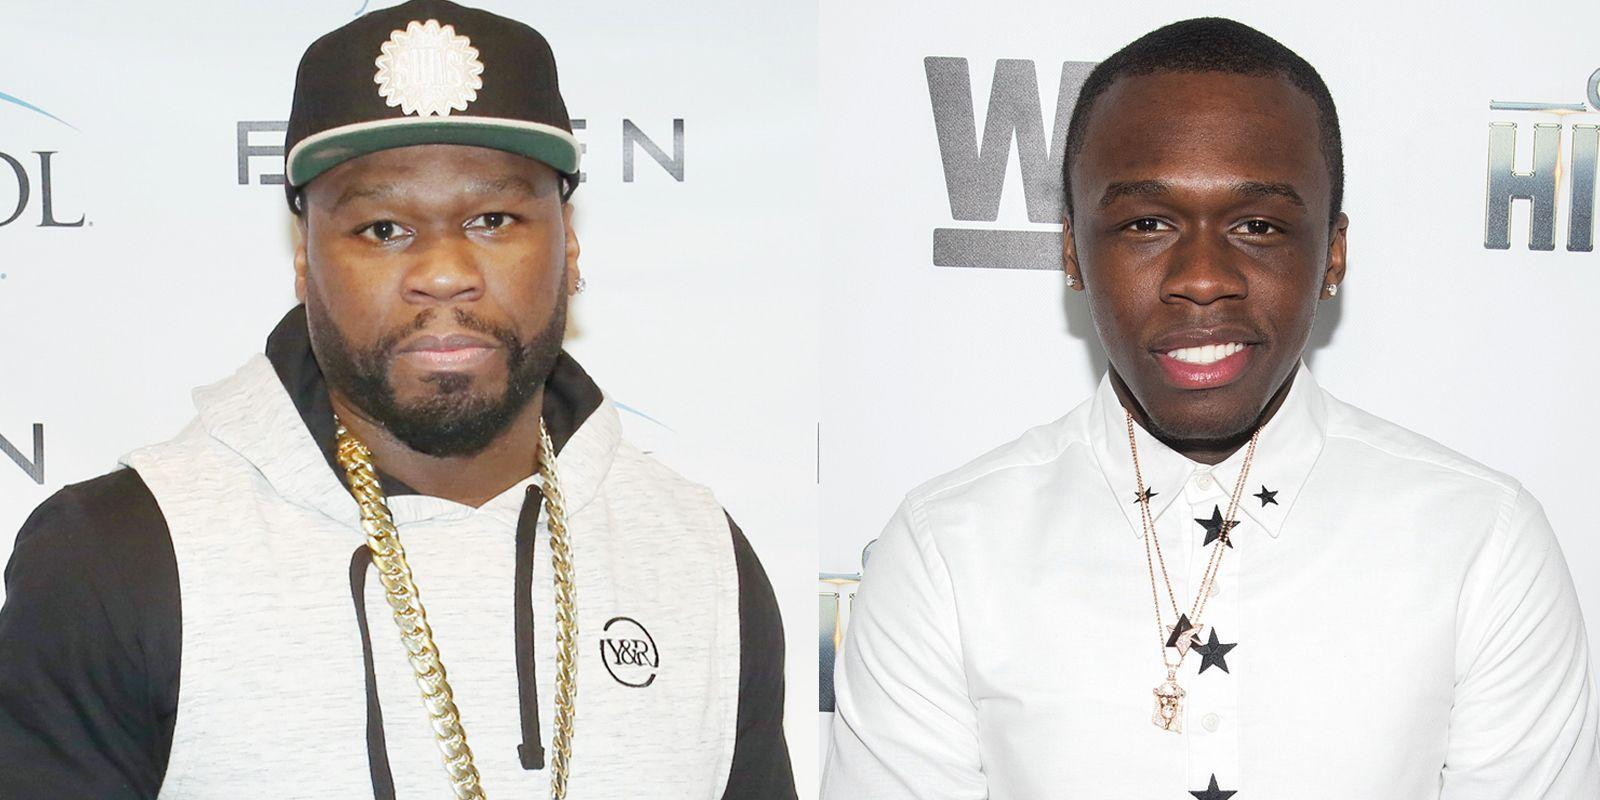 50 Cent's Estranged Son Shades Him - 'He Owes Me Money Too'